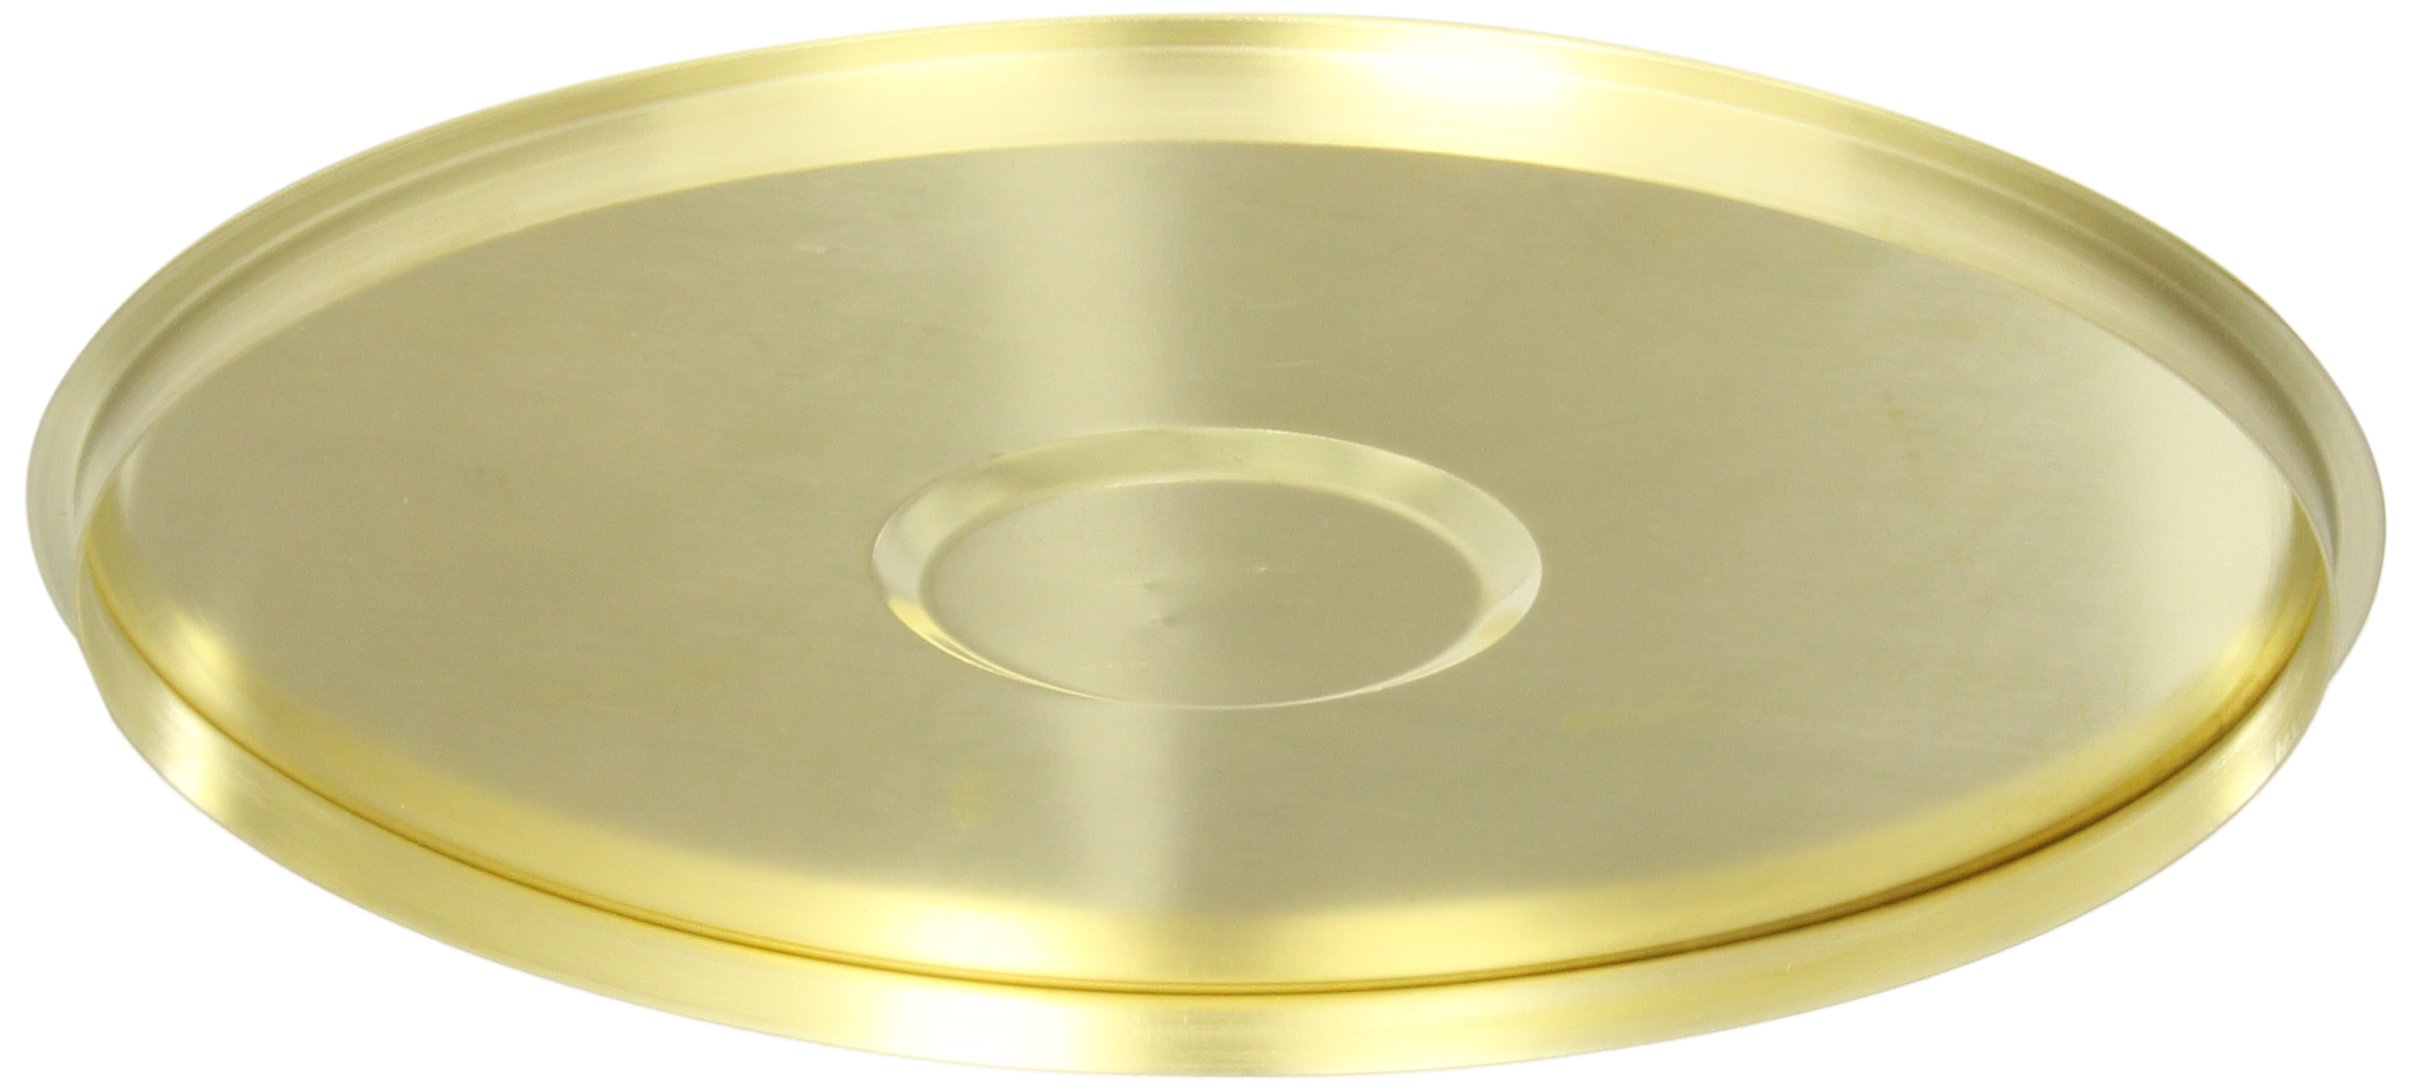 Advantech CB8W/R Brass Sieve Cover with Lifting Ring, 8'' Diameter by Advantech